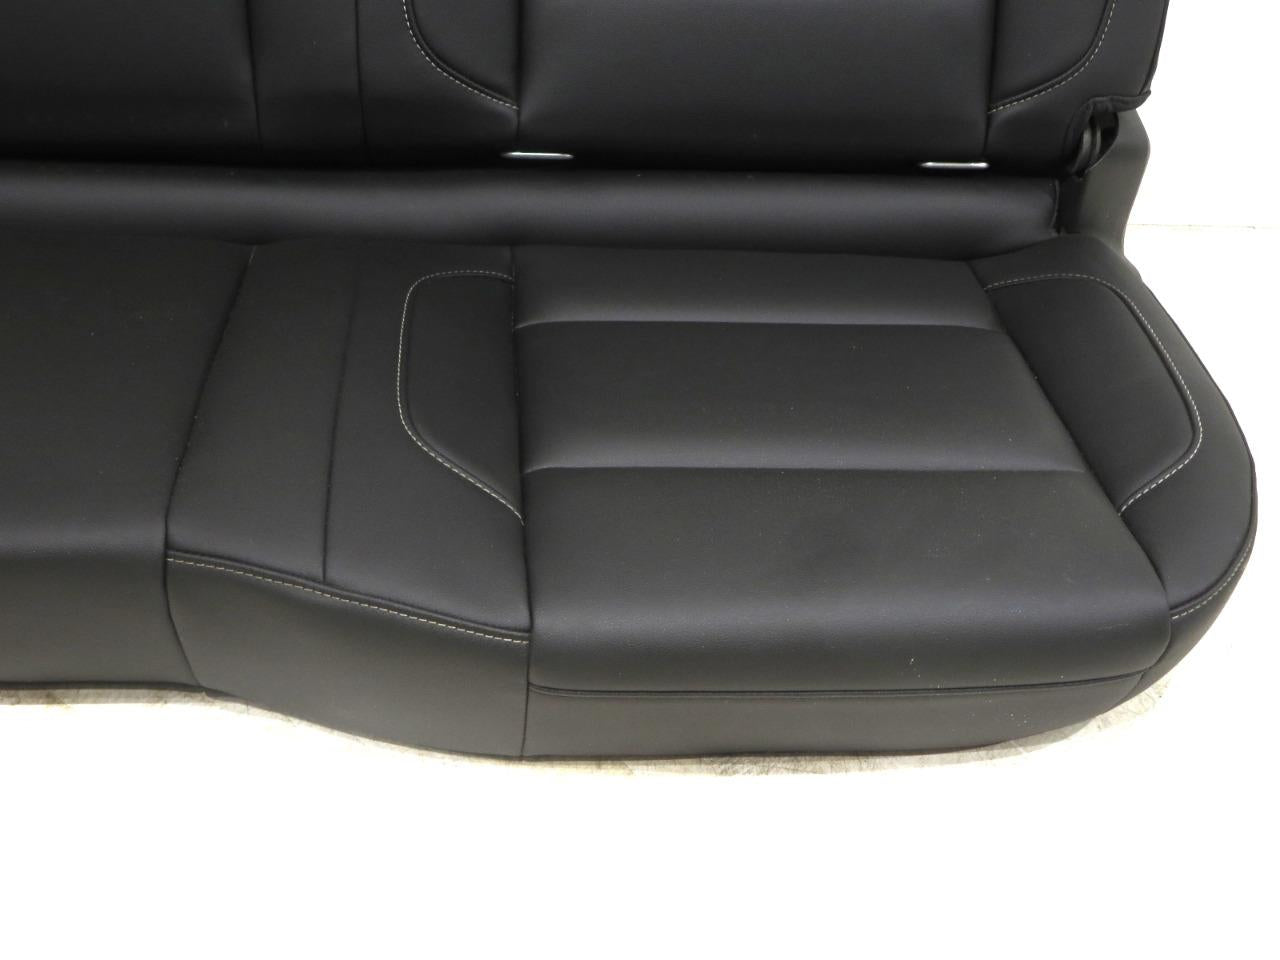 replacement chevy silverado gmc sierra double cab oem leather rear seat